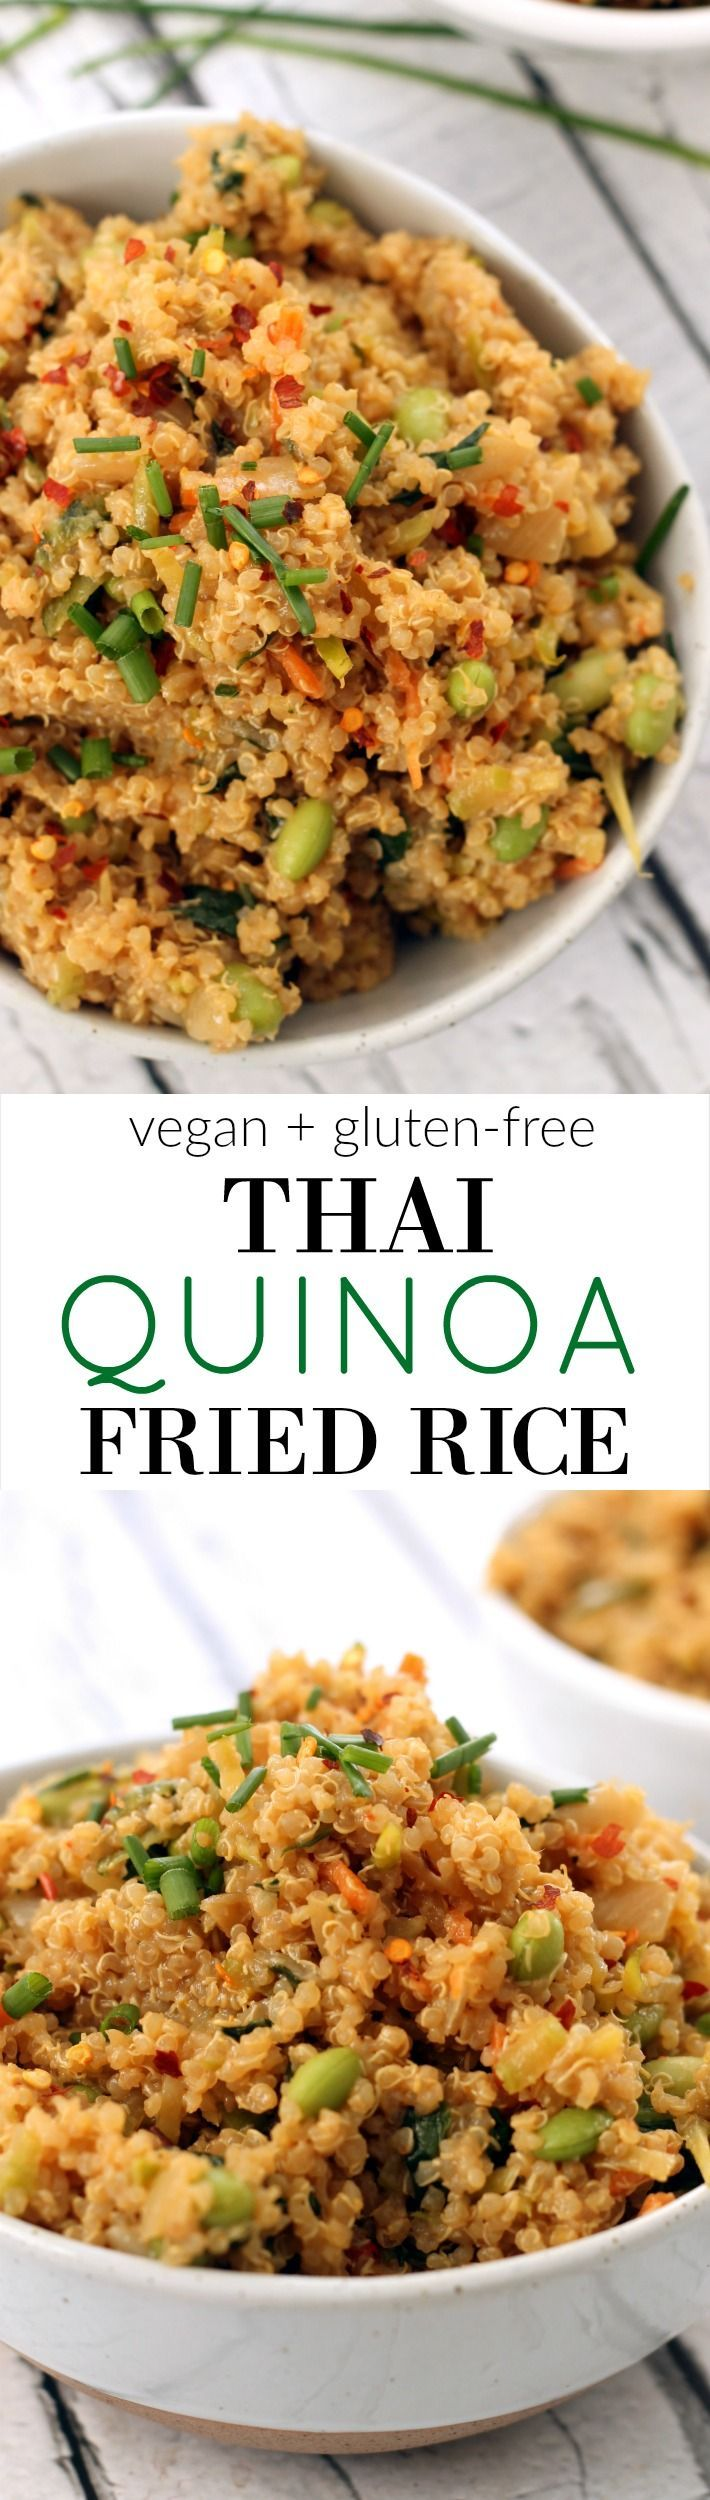 Thai Quinoa Fried Rice is a 30-minute vegan meal chock full of high-protein quinoa, edamame, veggies, and peanut sauce in the comfort of your own home!